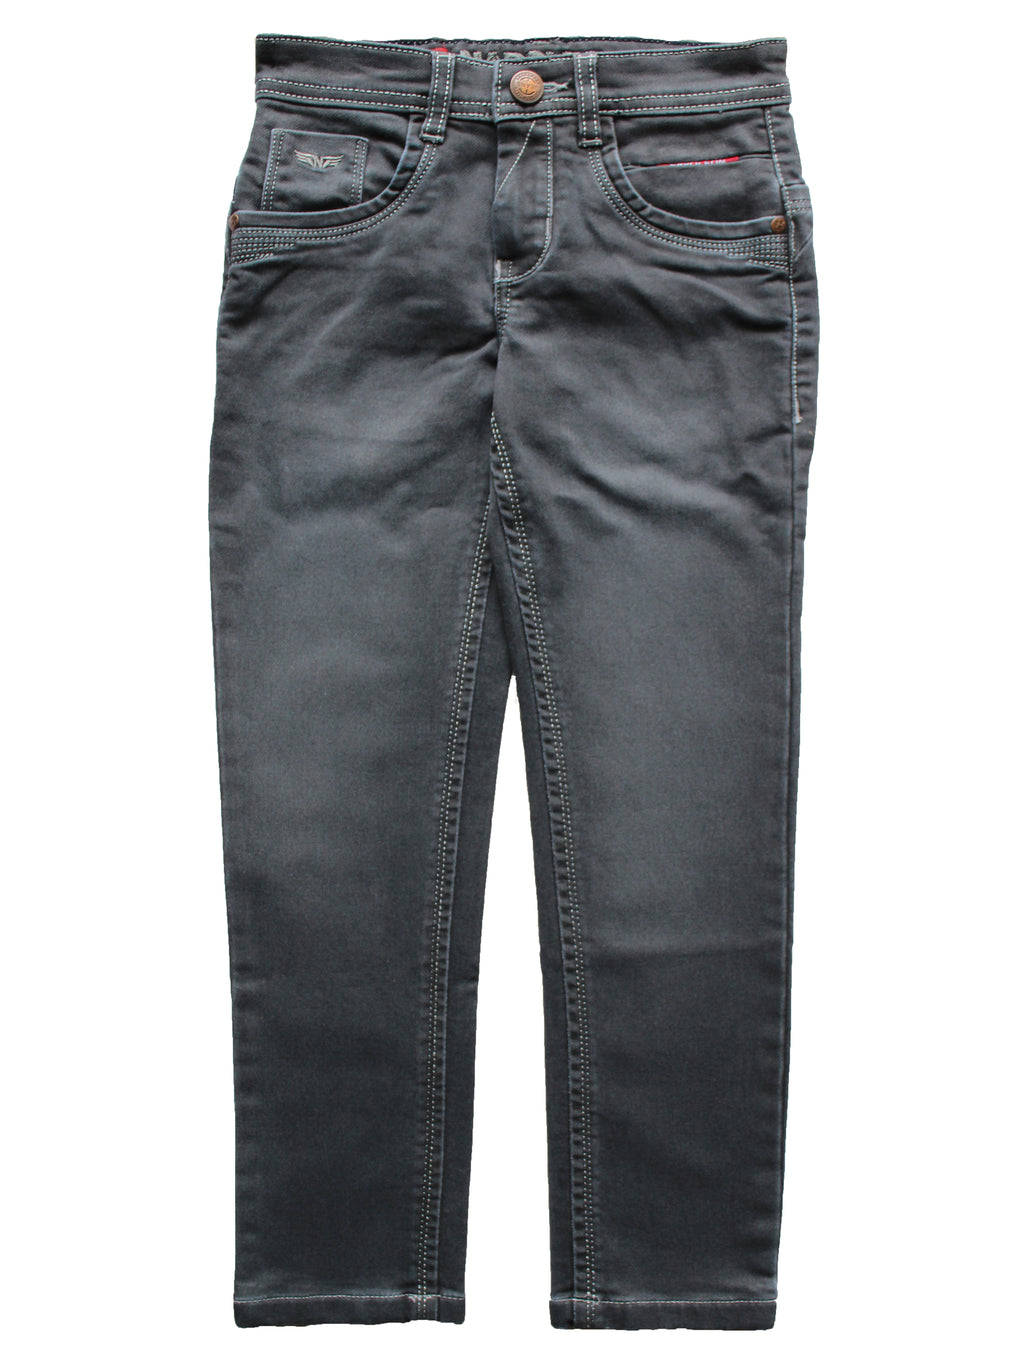 Wish Karo | Boys Grey Denim Jeans